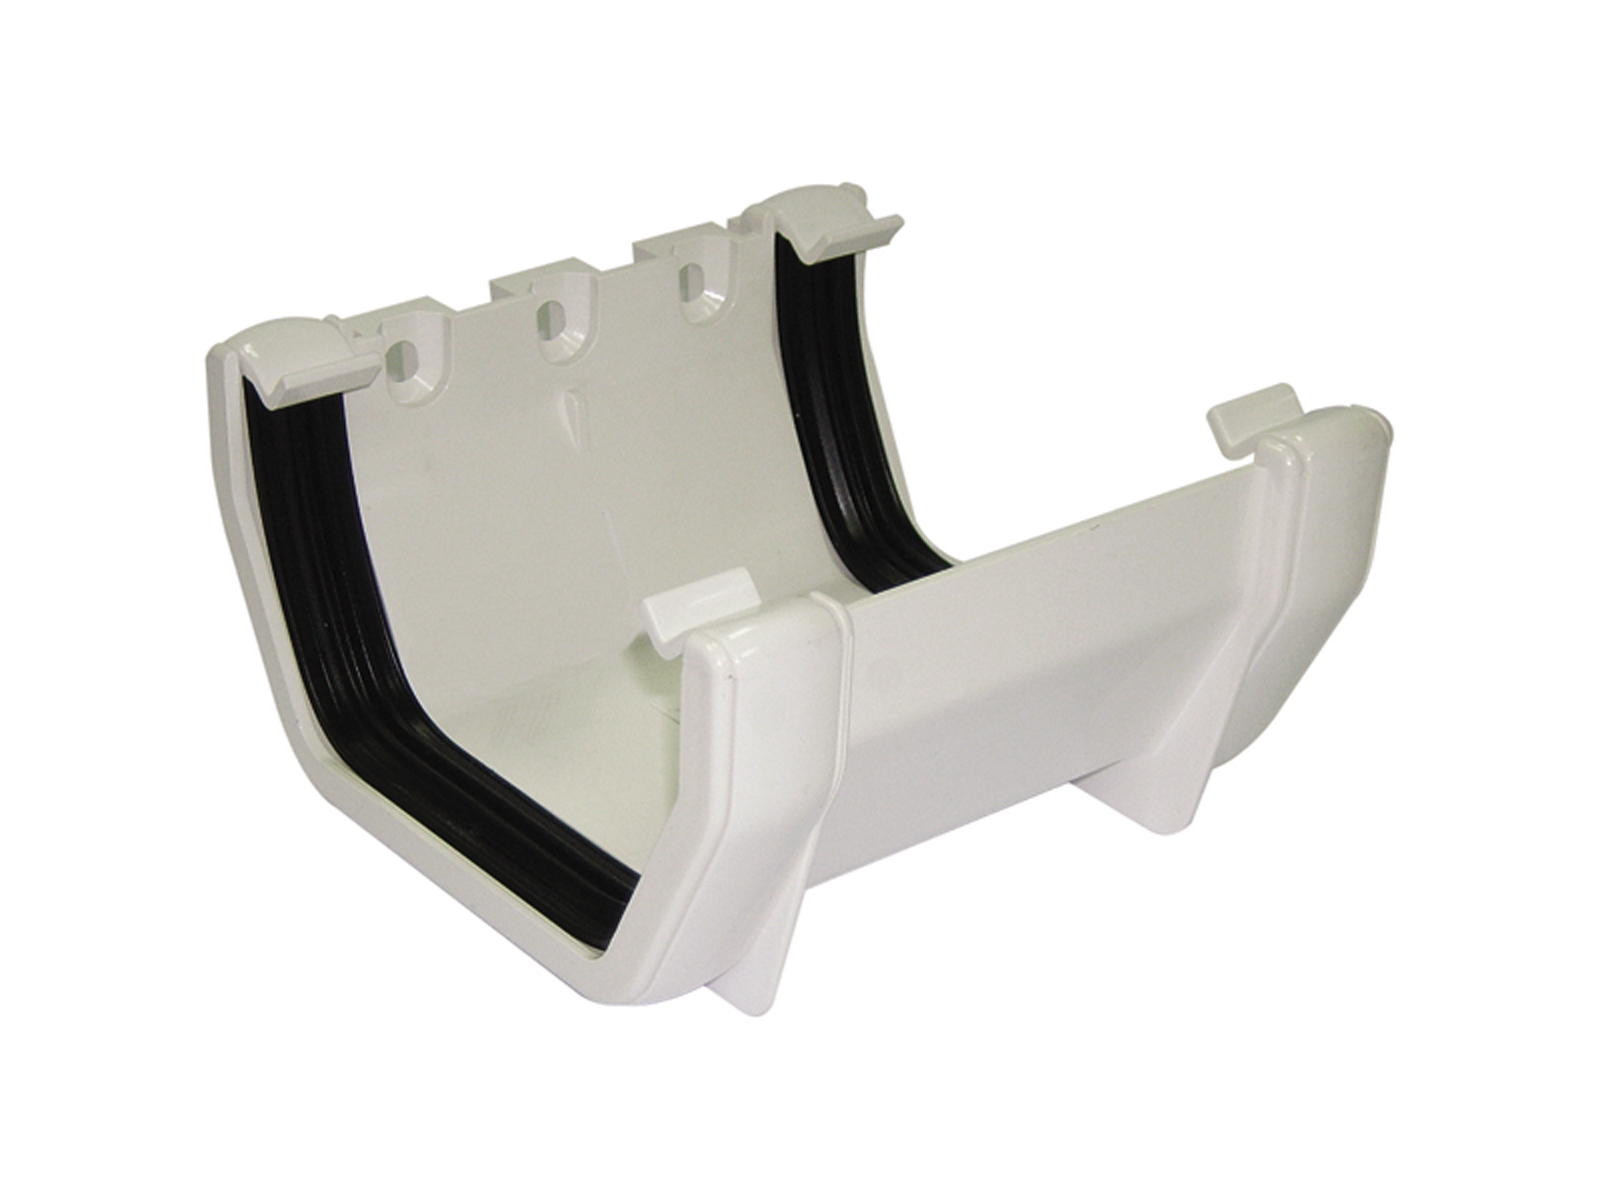 FLOPLAST SQUARE LINE GUTTER - RUS1 UNION BRACKET - WHITE